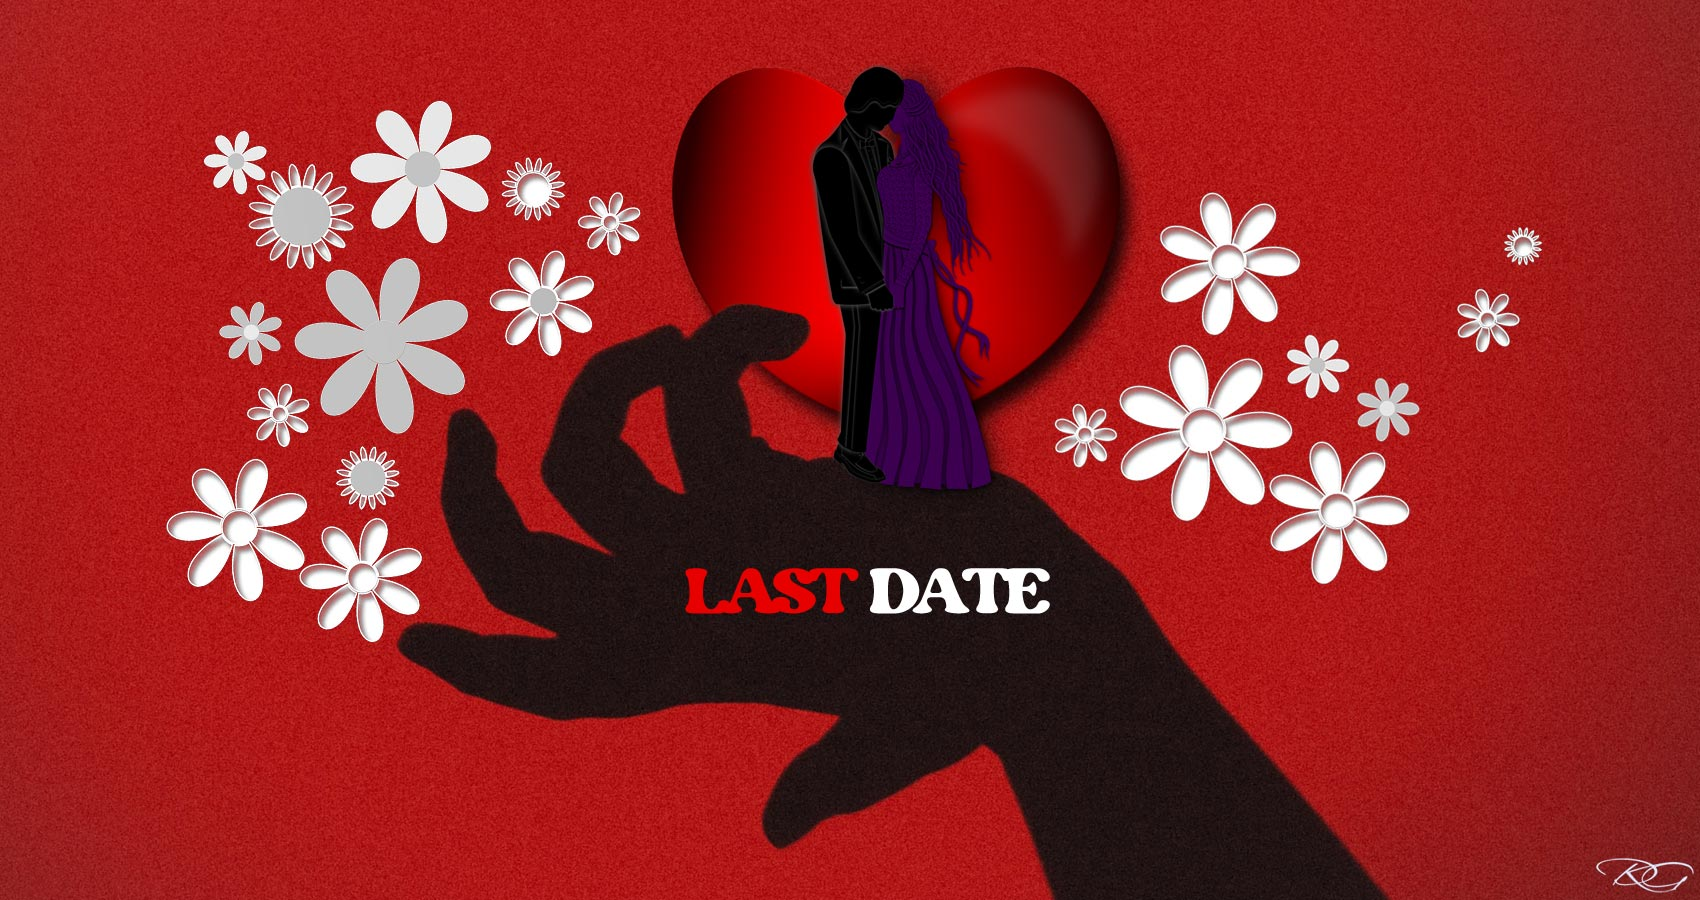 Last Date, flash fiction by Robert Walton at Spillwords.com